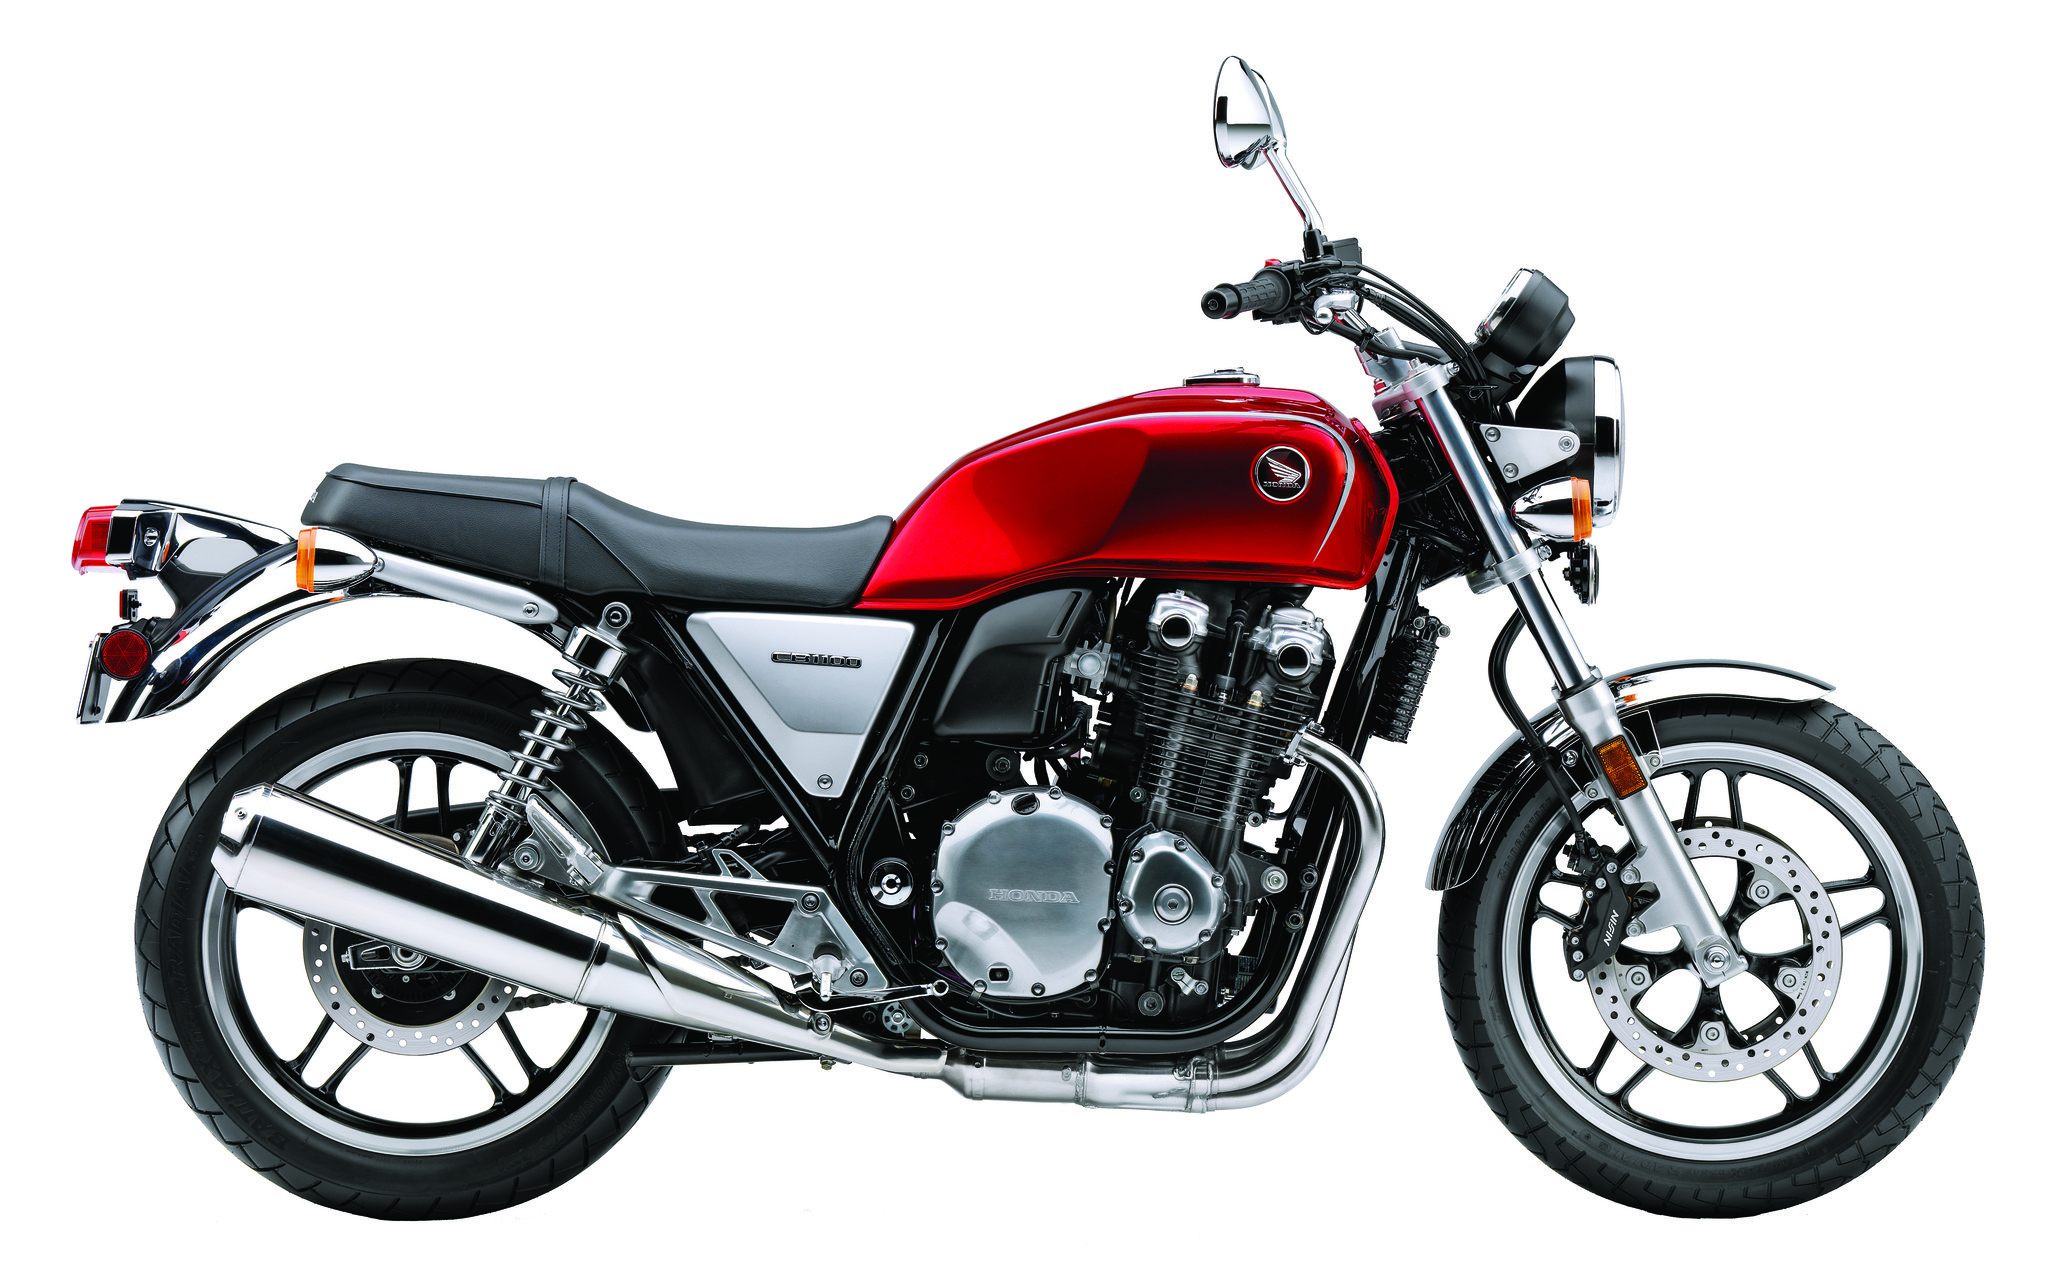 Gallery: 2013 Honda motorcycle lineup includes CB500s, Gold Wing F6B - Honda CB1100